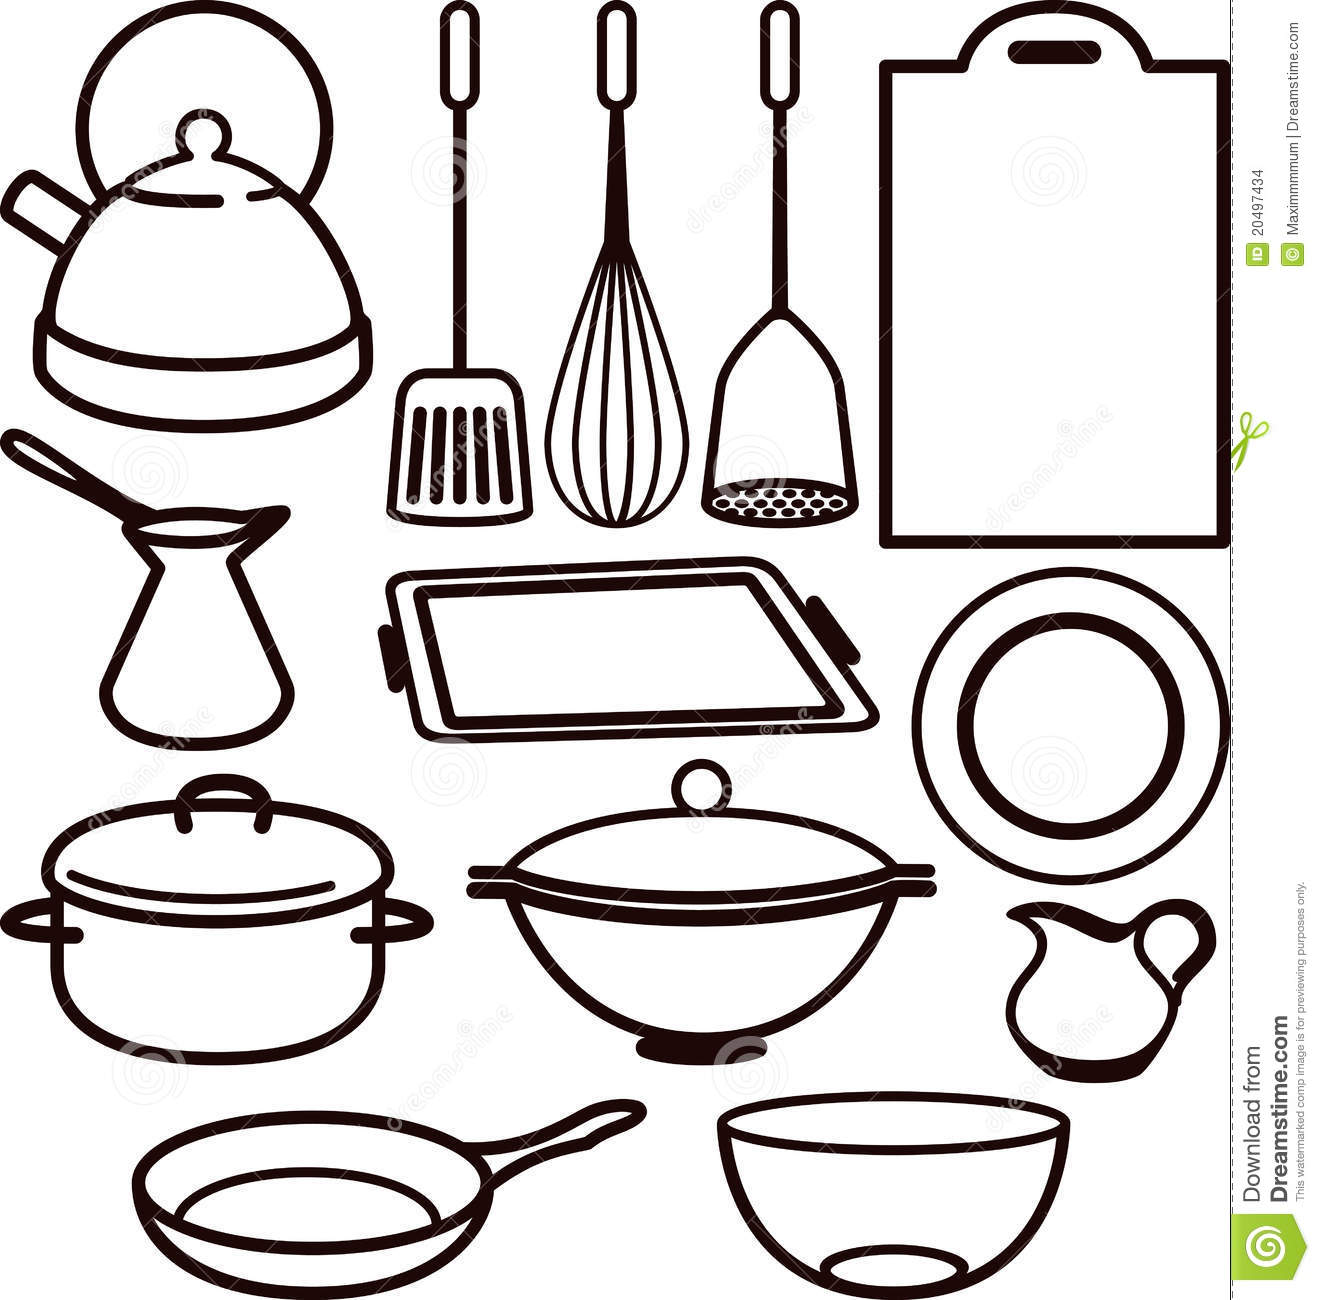 kitchen utensil stock illustration image of masher  blender 20497434 mixing bowl clip art free mixing bowl and whisk clipart